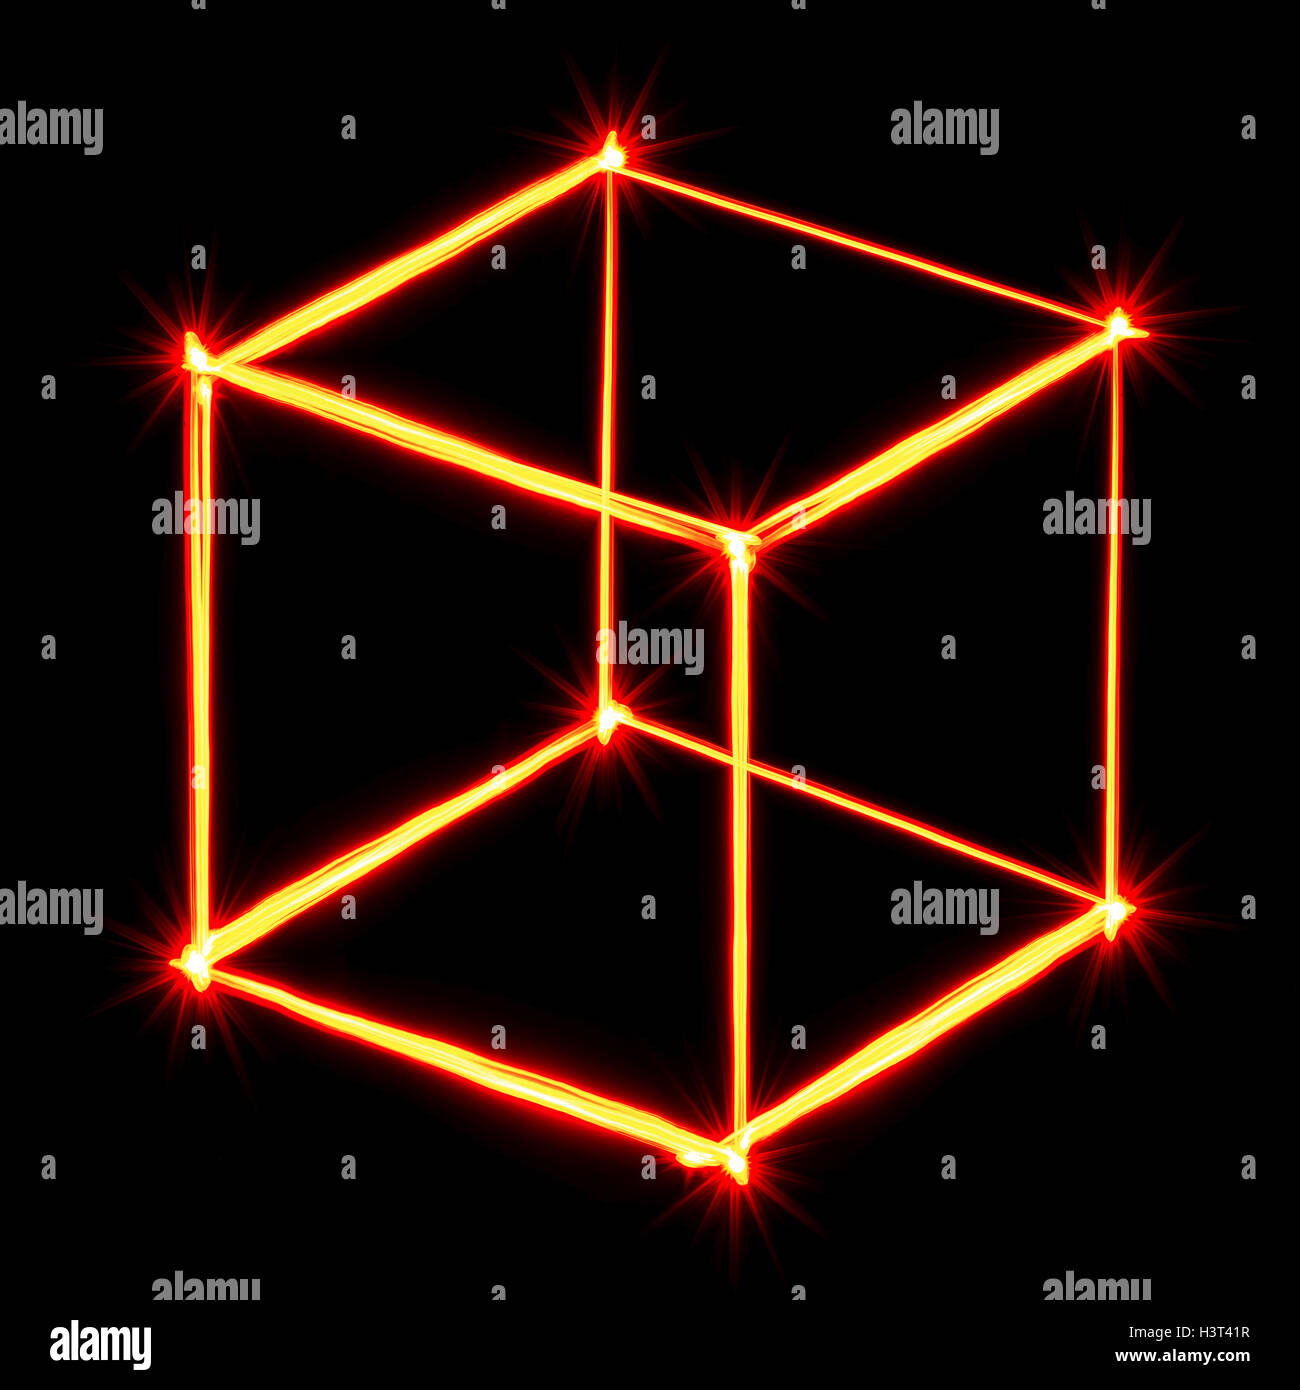 red light painting necker cube on black background - Stock Image